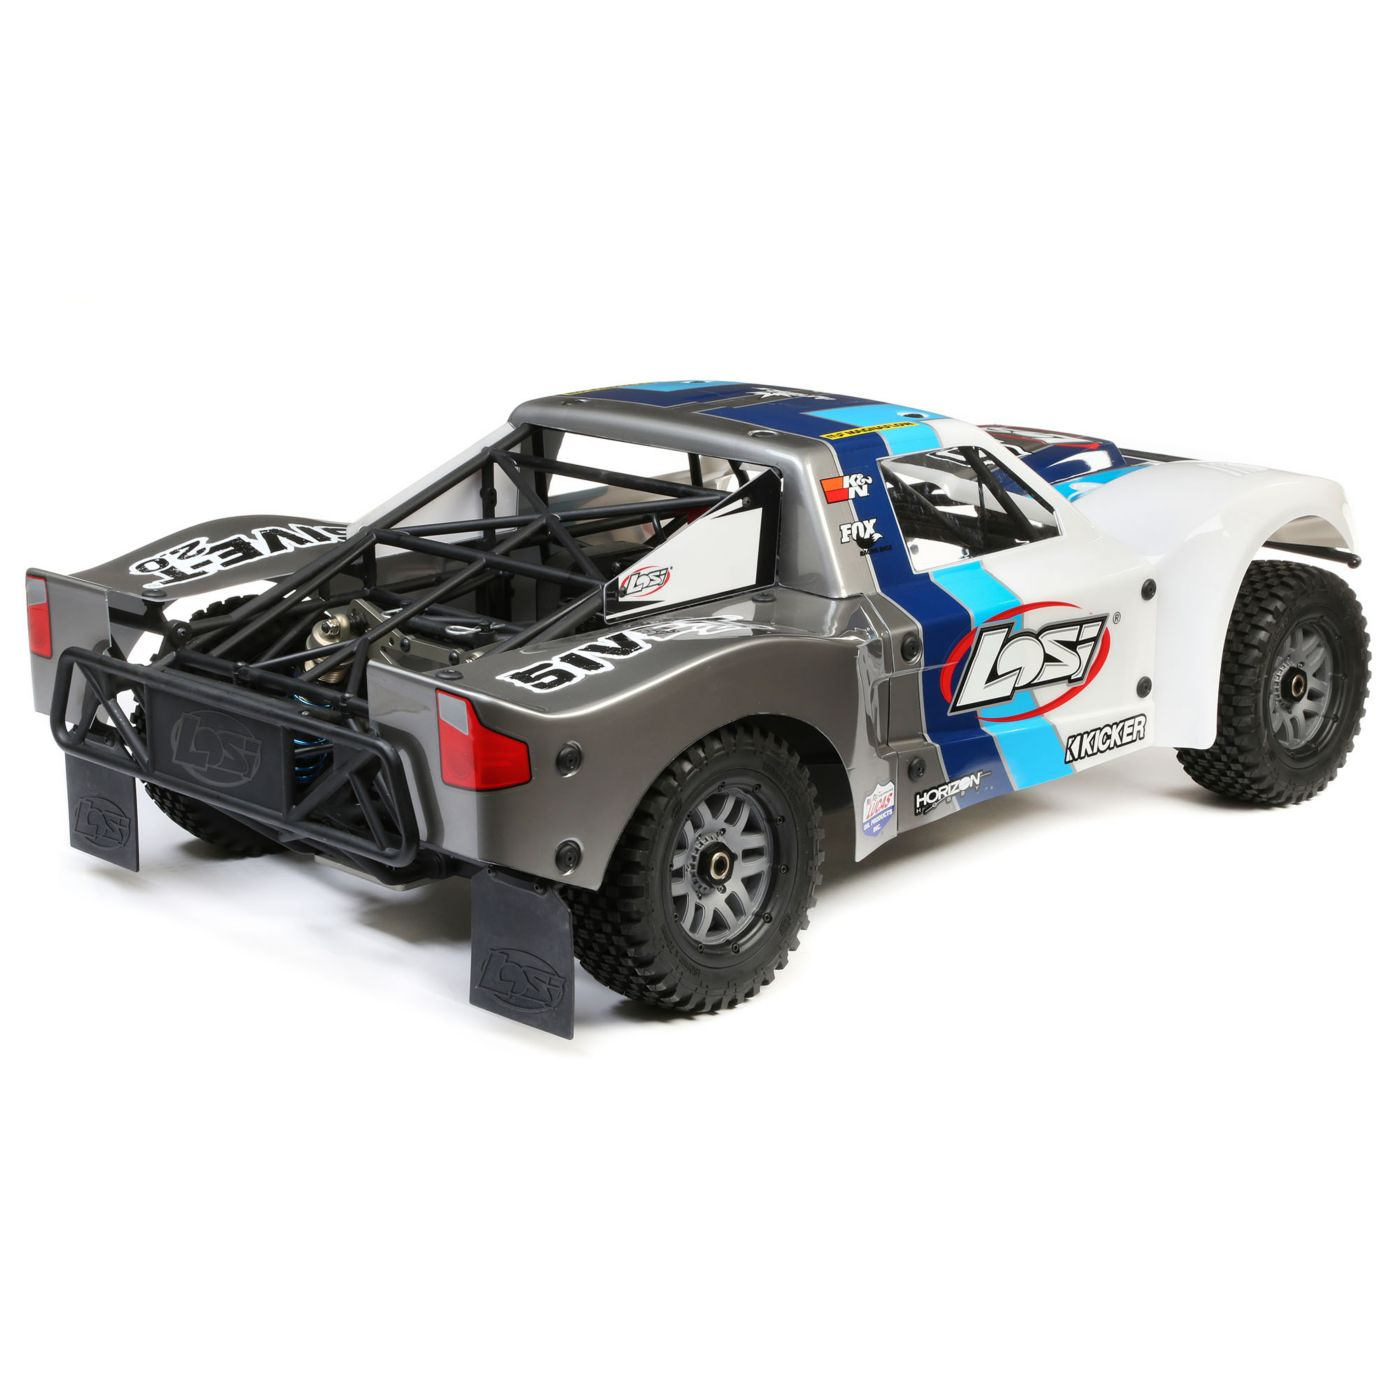 Losi 5ive-t 2 Short Course Truck - Rear